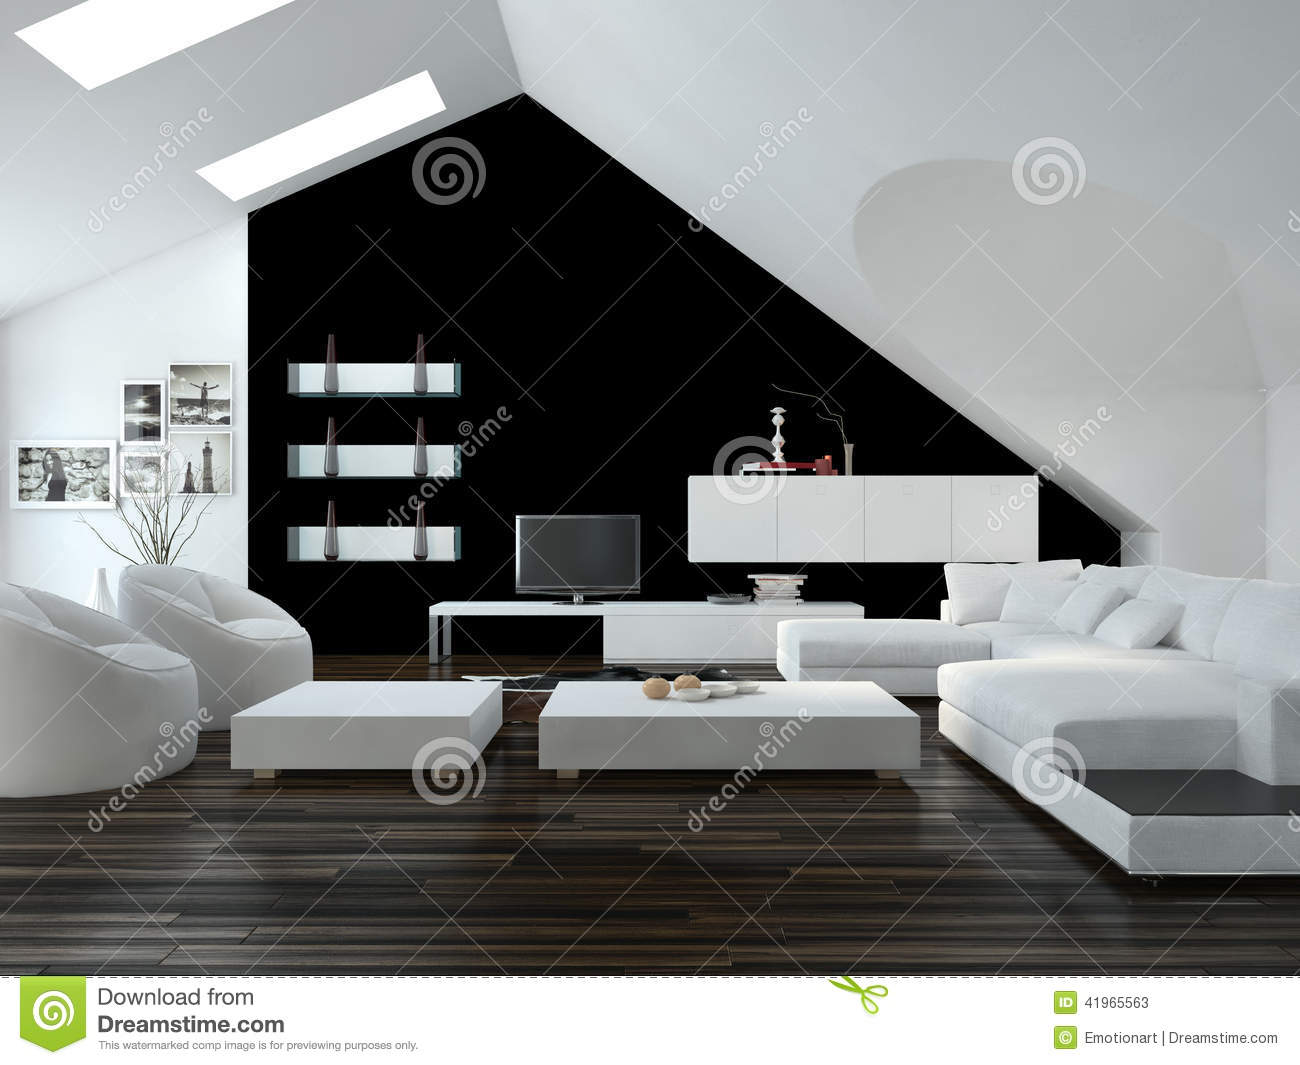 Painting Kitchen Cabinets Ideas Pictures Modern Black And White Loft Living Room Interior Stock